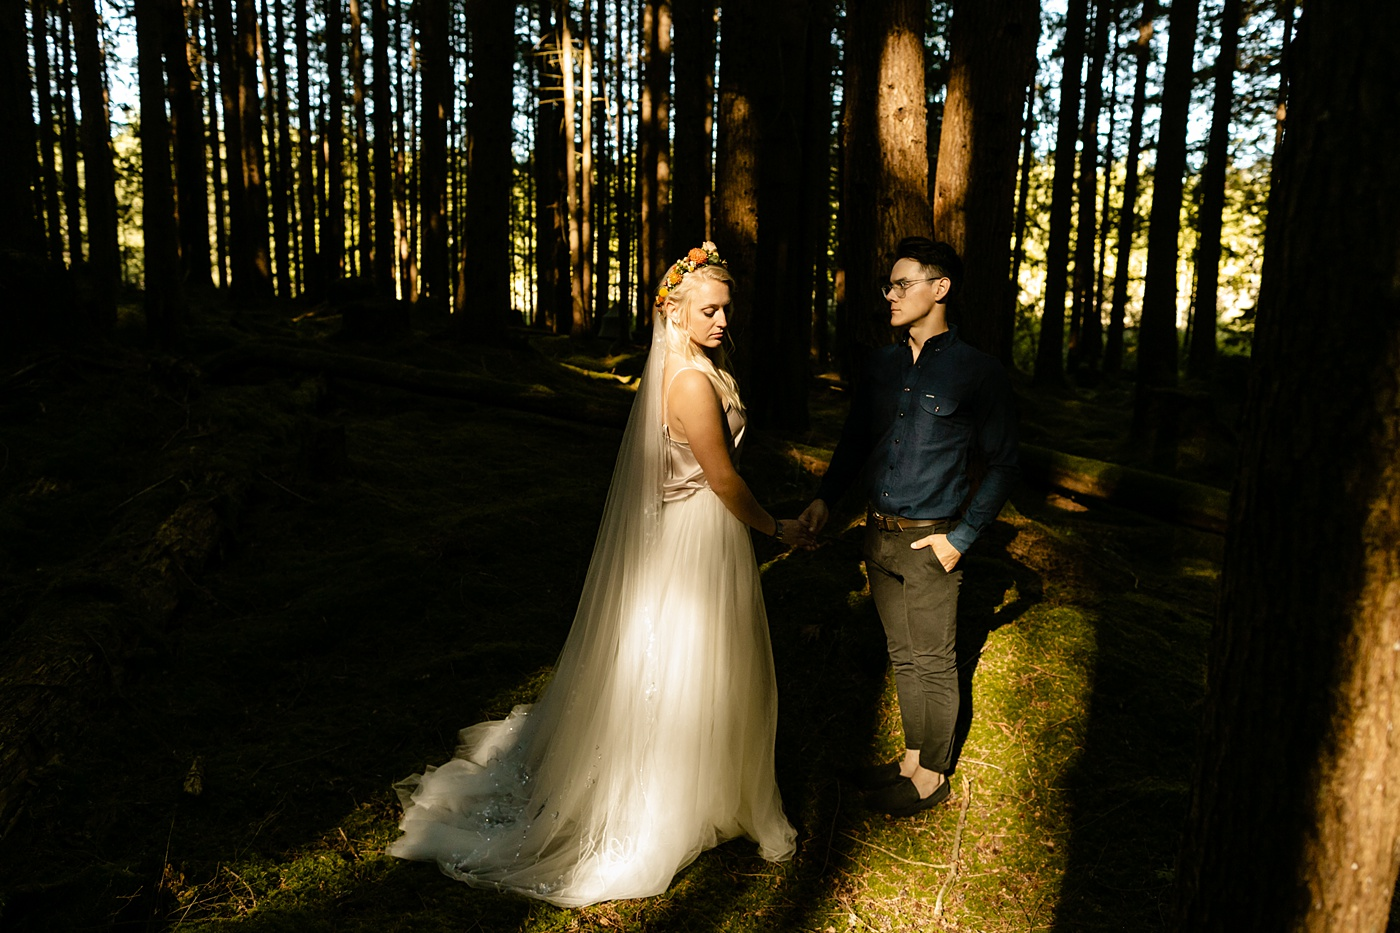 Unique use of natural harsh sunlight elopement photographer